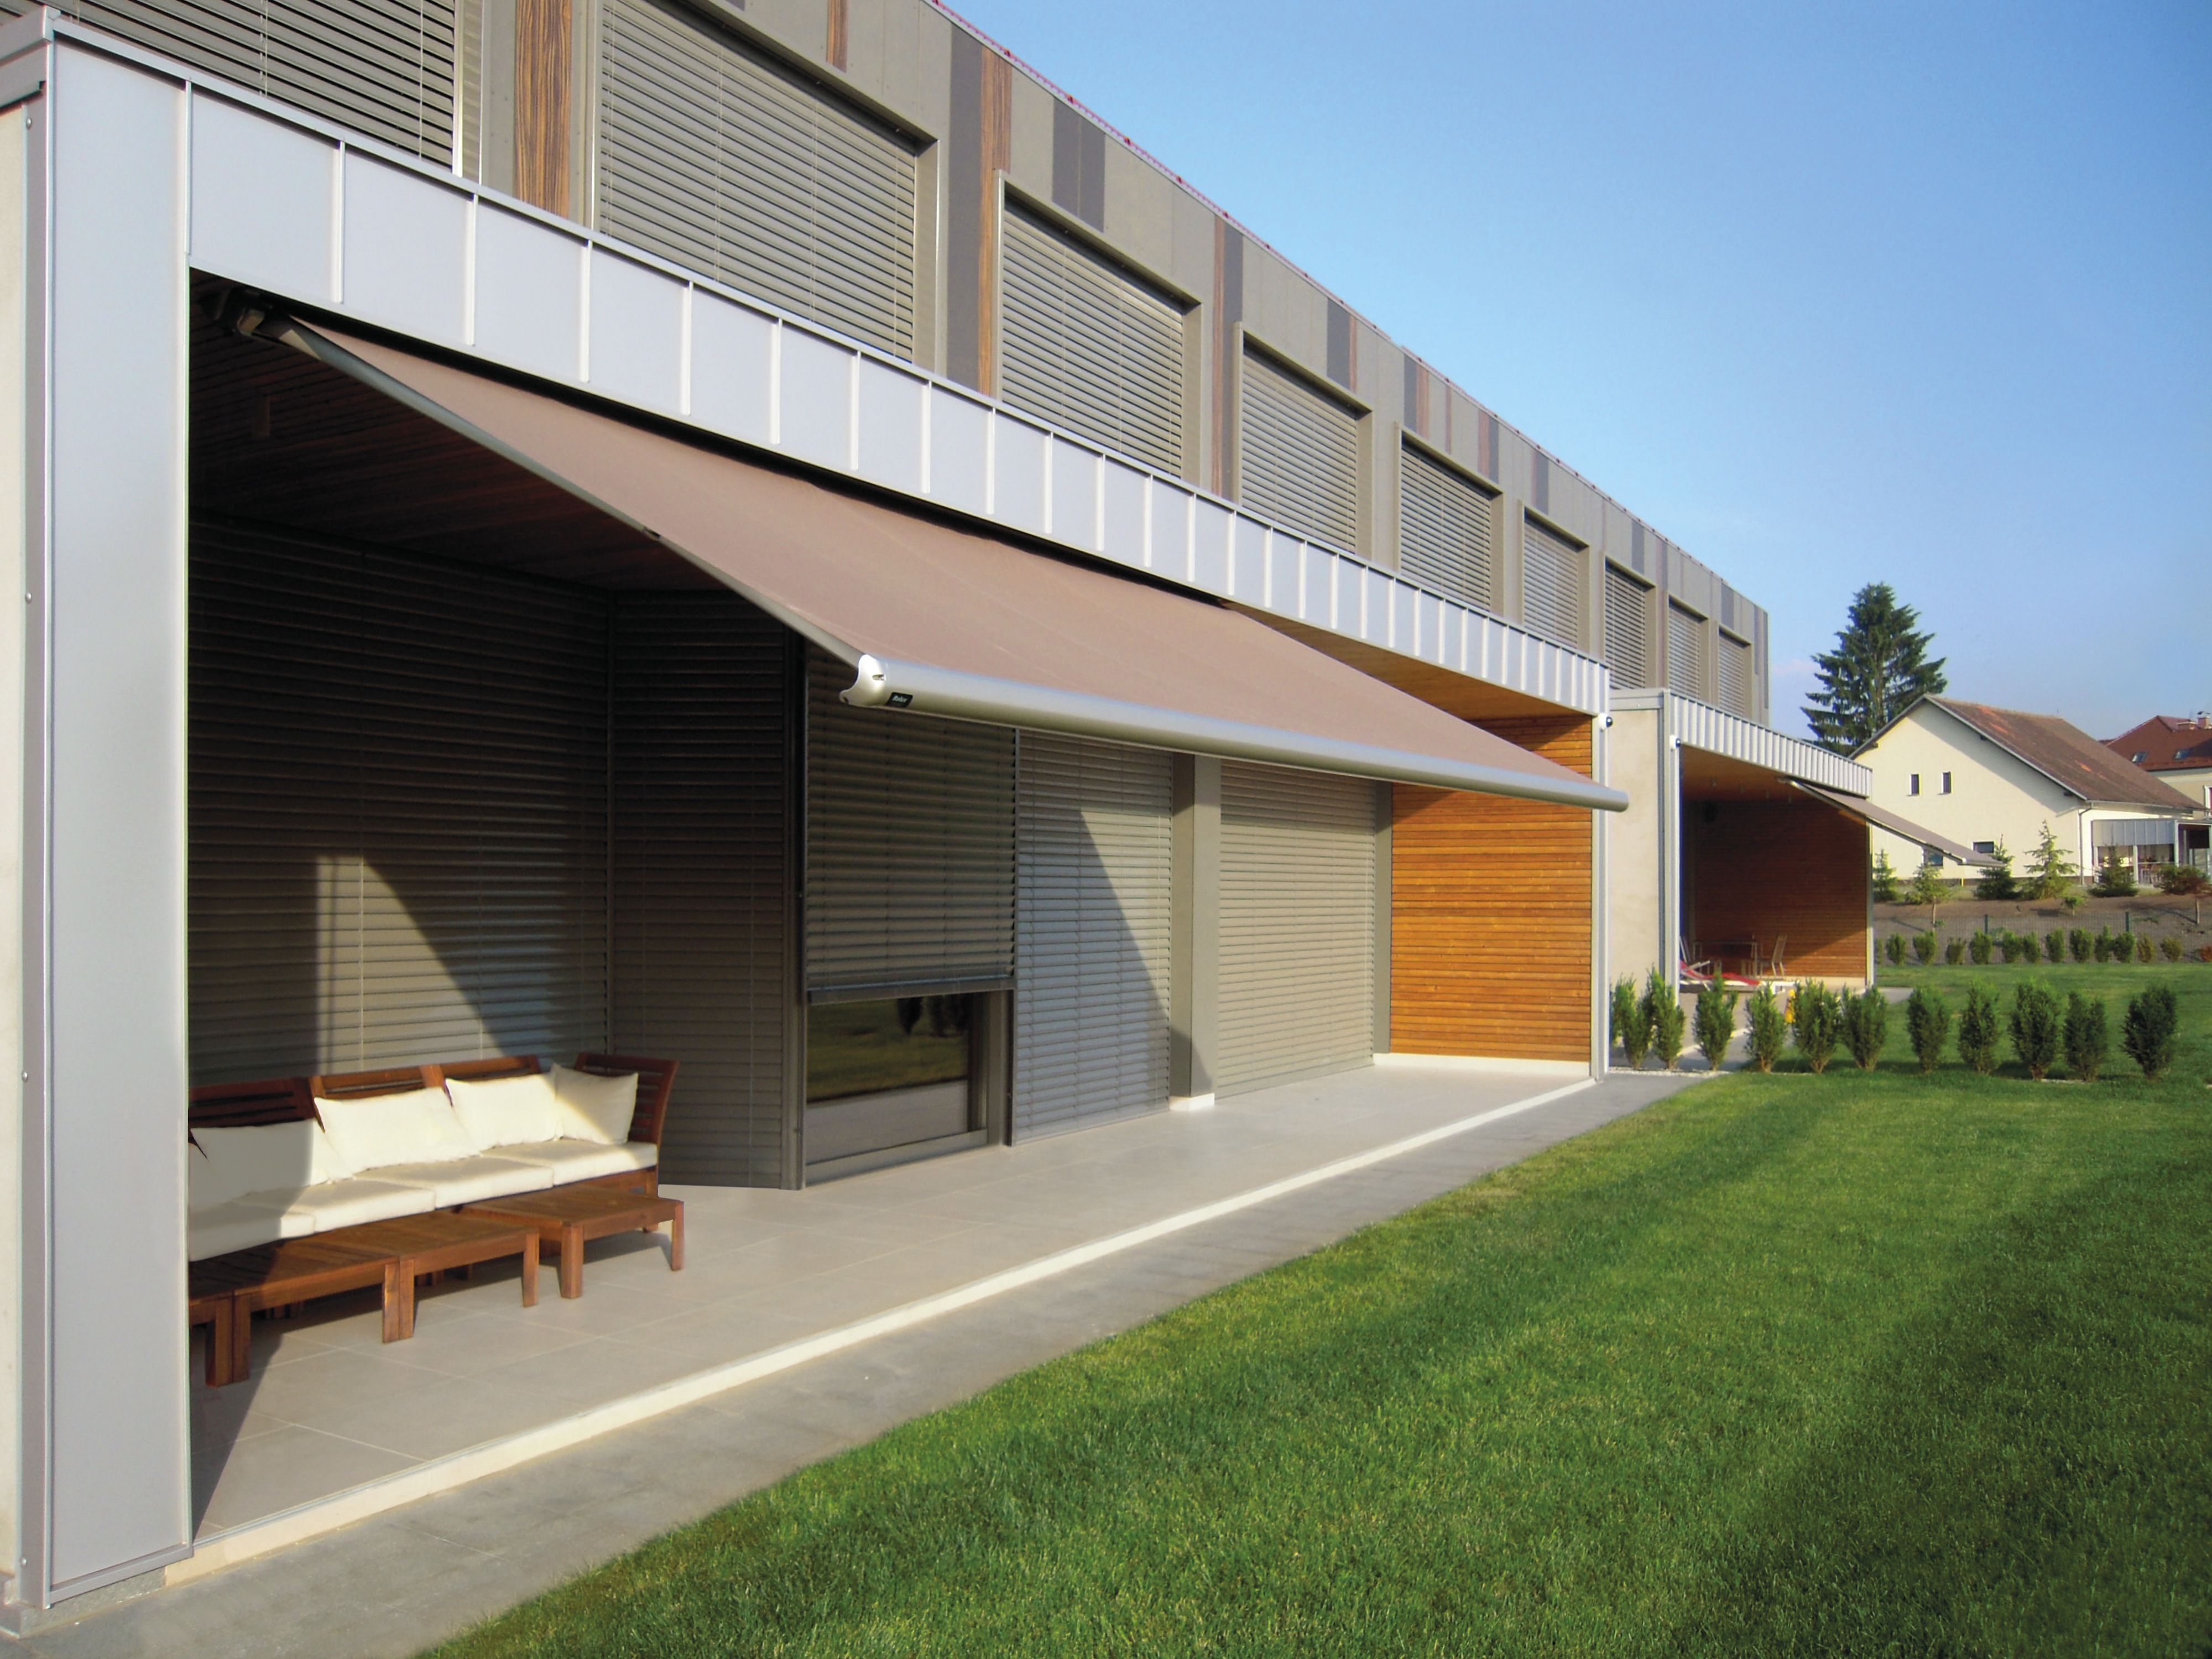 Awnings and retractable awning Projects | Euro Systems®